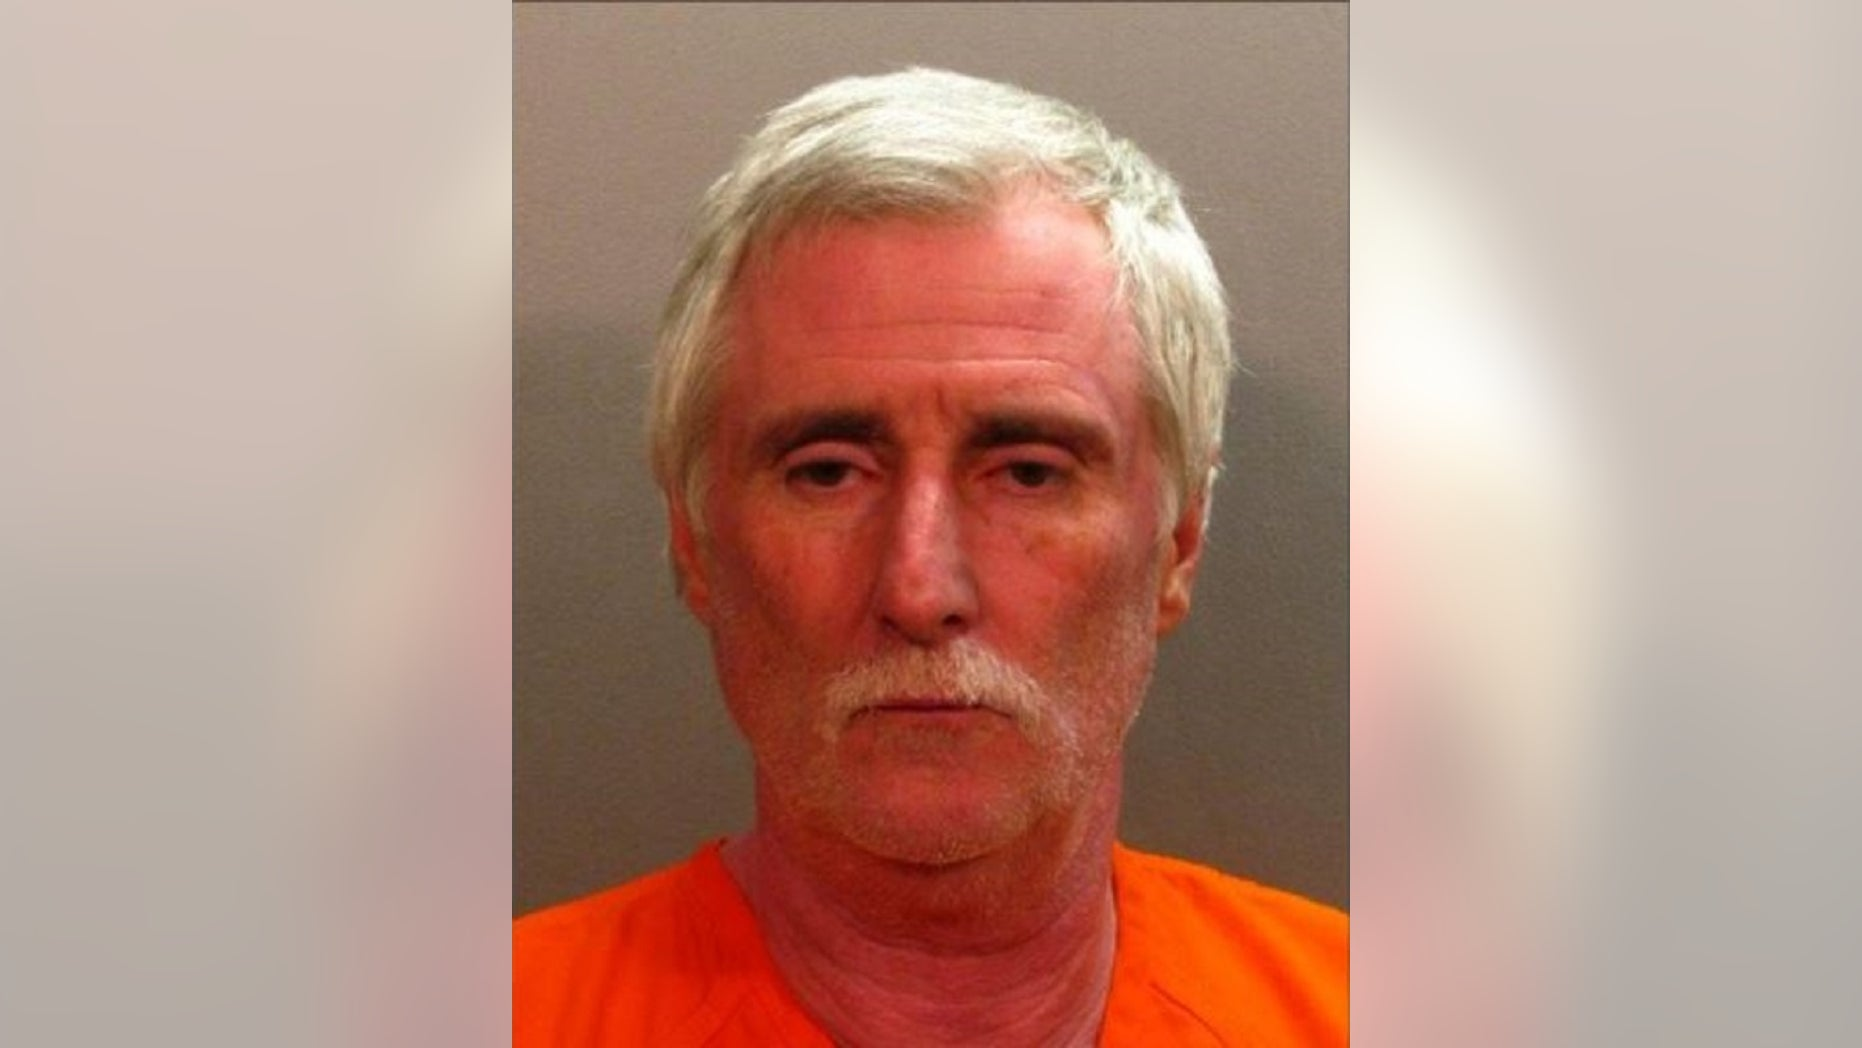 Donald James Smith, 61, is facing the death penalty for the rape and murder of 8-year-old Cherish Perrywinkle.